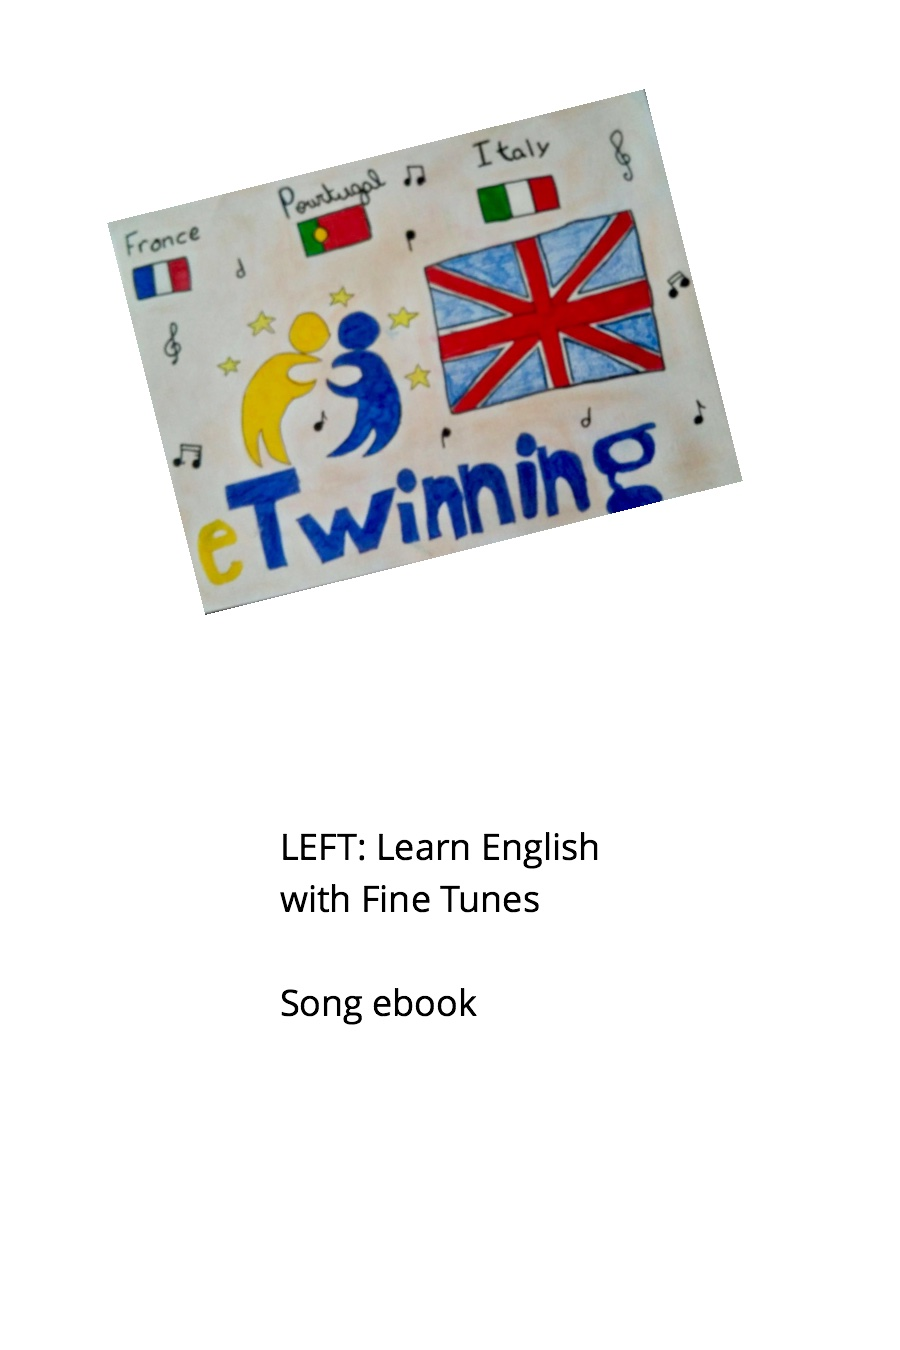 A Song ebook